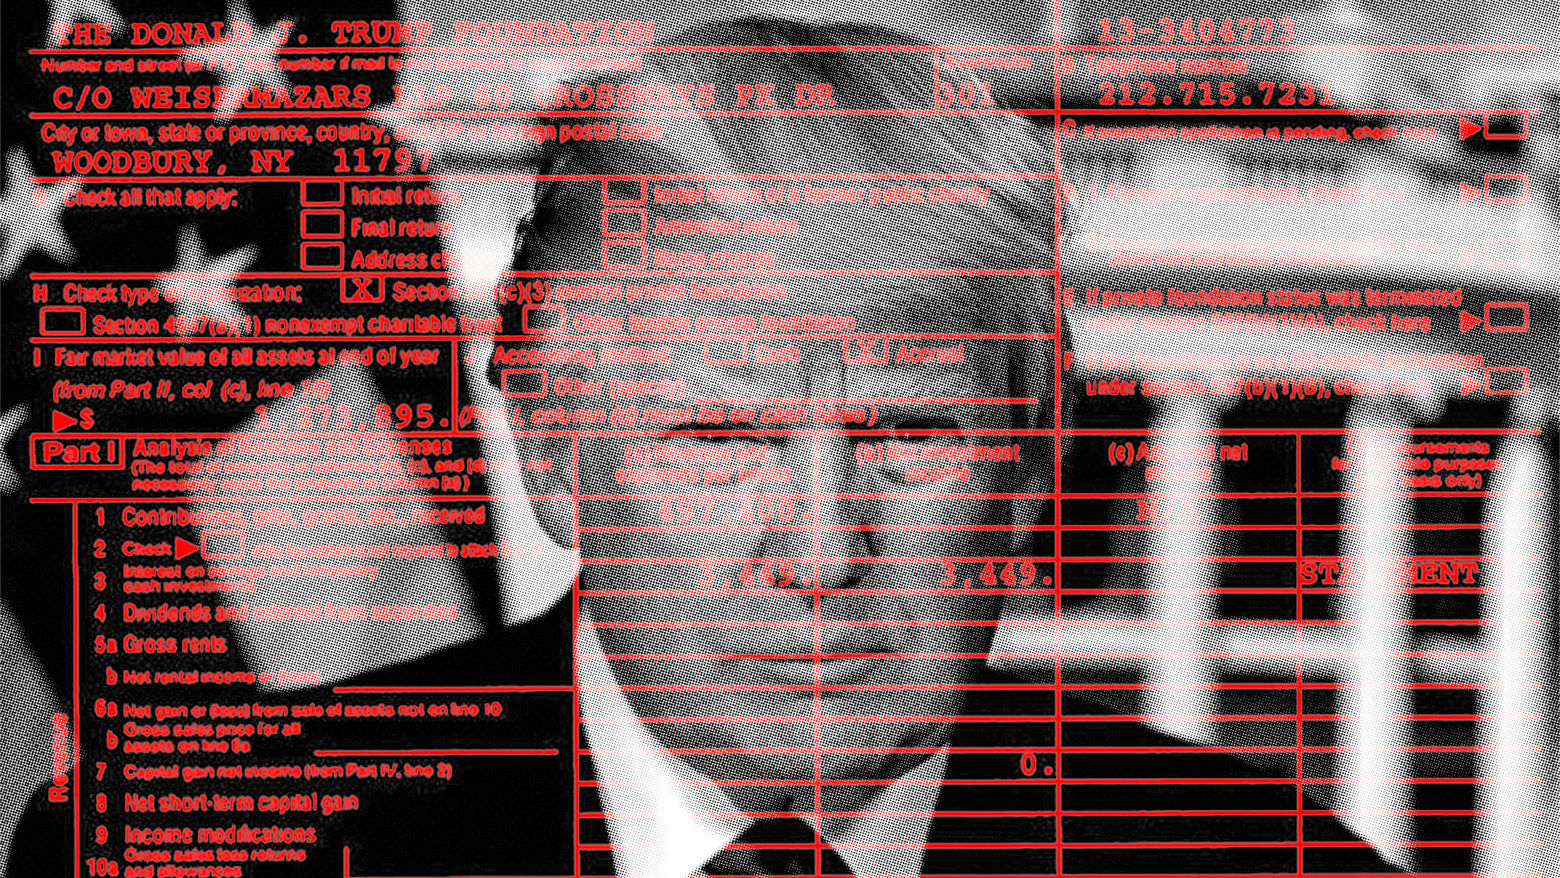 A graphic of President Trump behind a red screen of a tax return